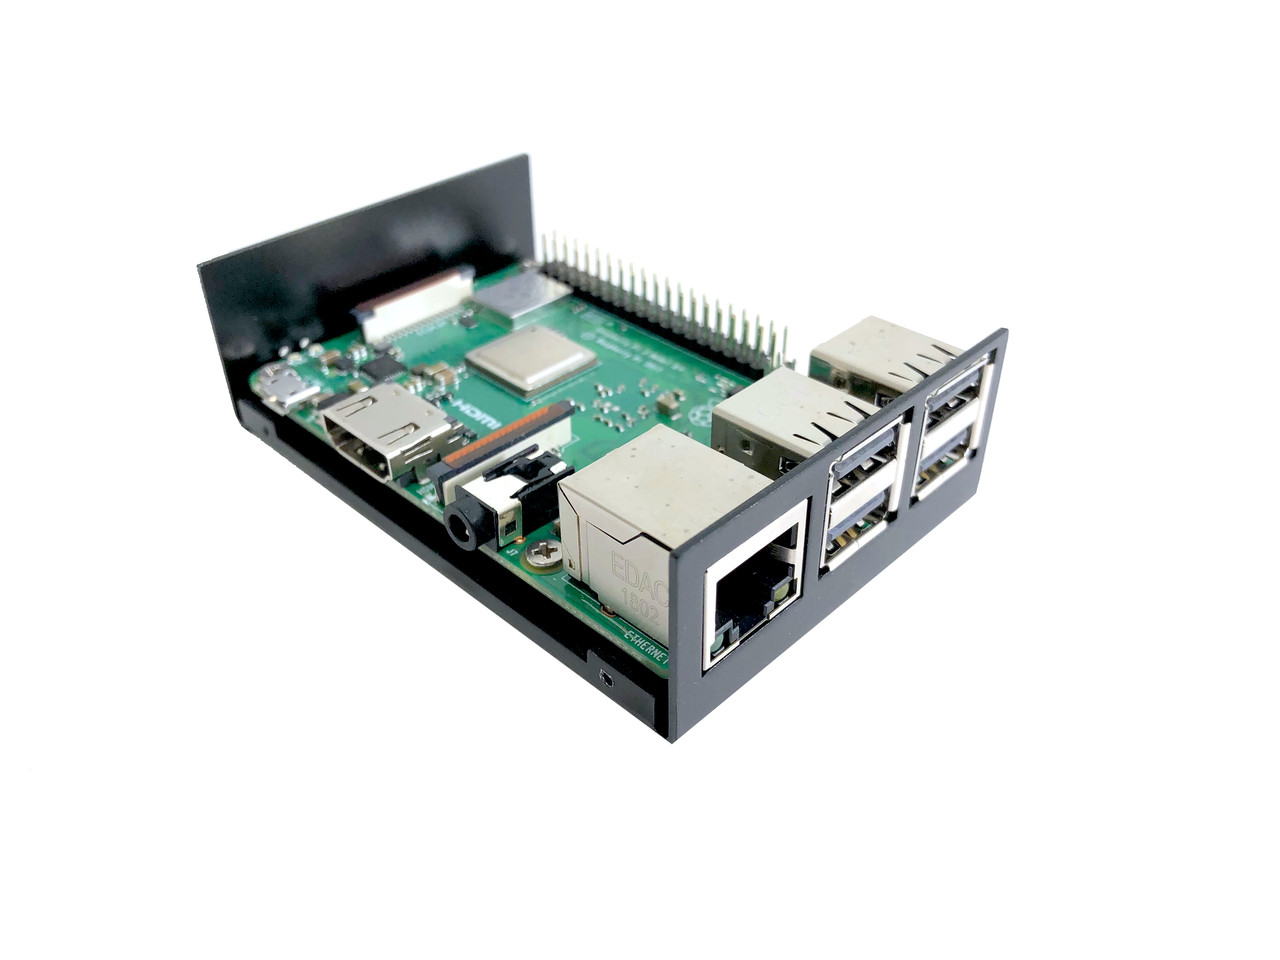 Aluminum Raspberry Pi 3 Case for Model B/B+ with UL Approved On/Off Switch 5V/2.5A Power Adapter - Black